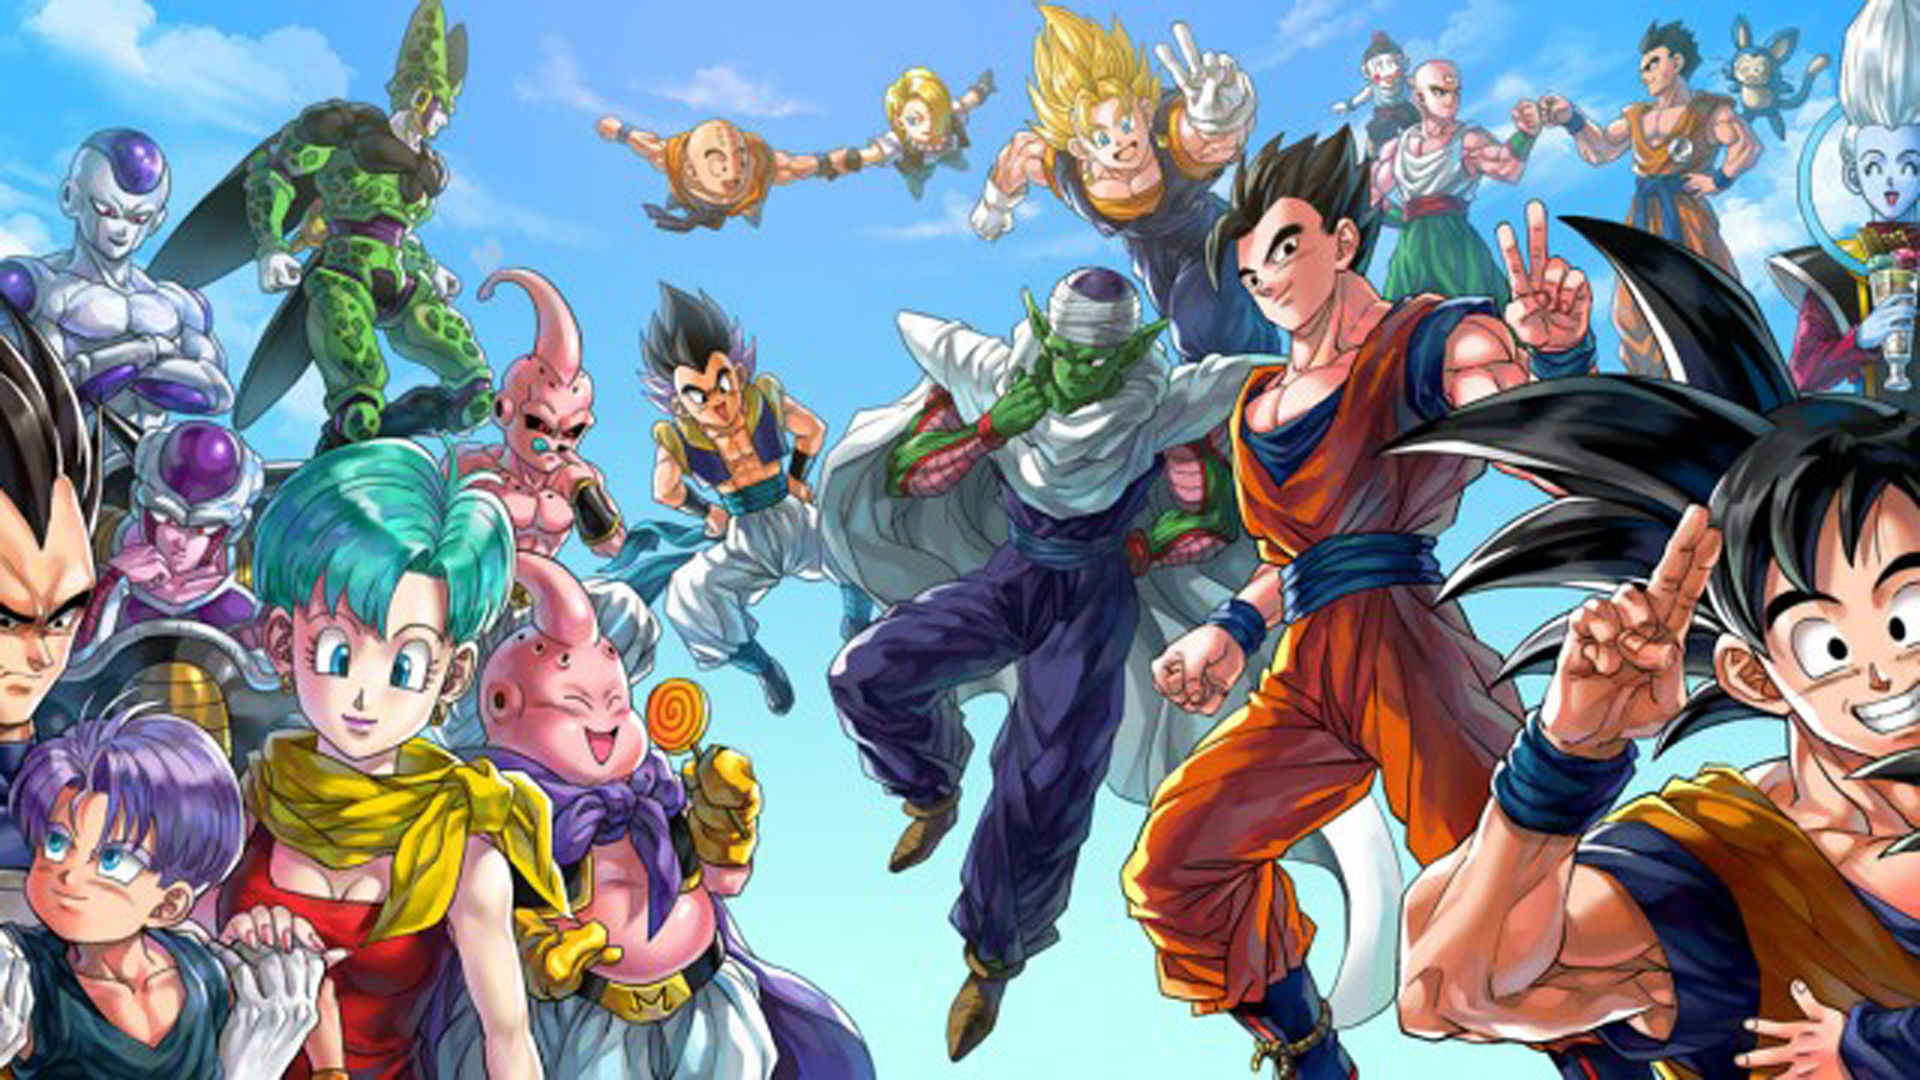 Awesome Dragon Ball Z Backgrounds